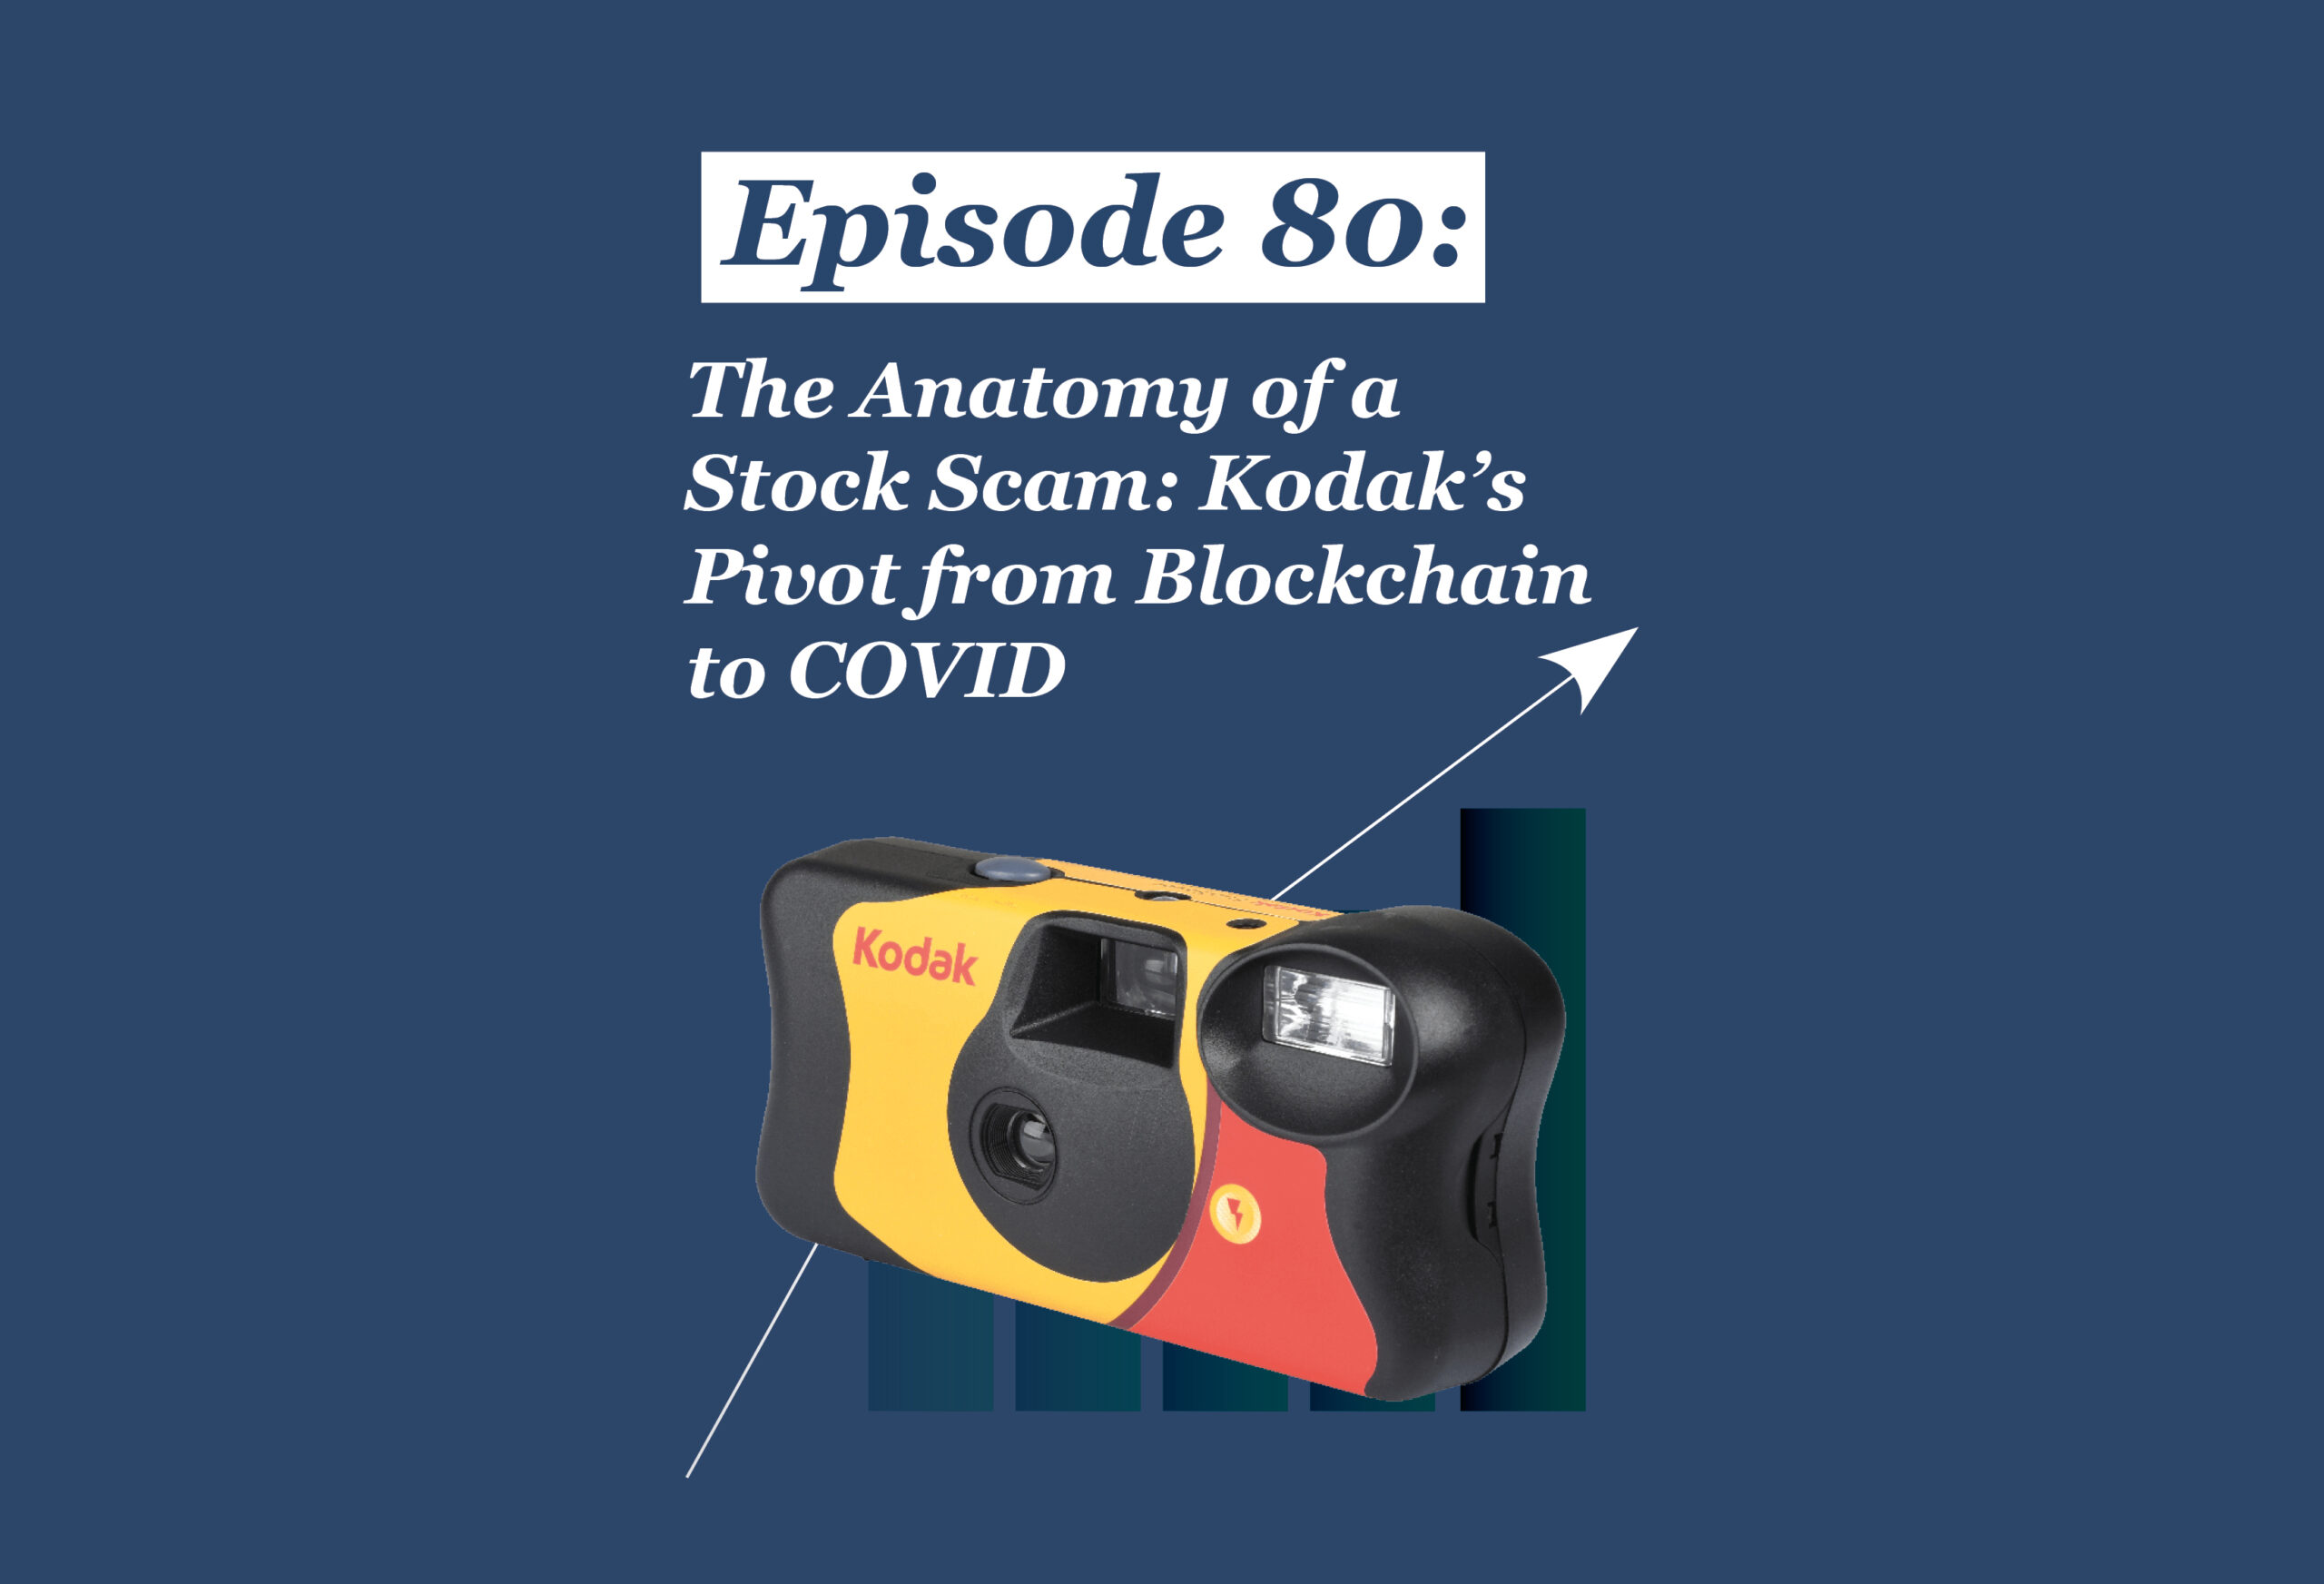 Absolute Return Podcast #80: The Anatomy of a Stock Scam: Kodak's Pivot from Blockchain to COVID